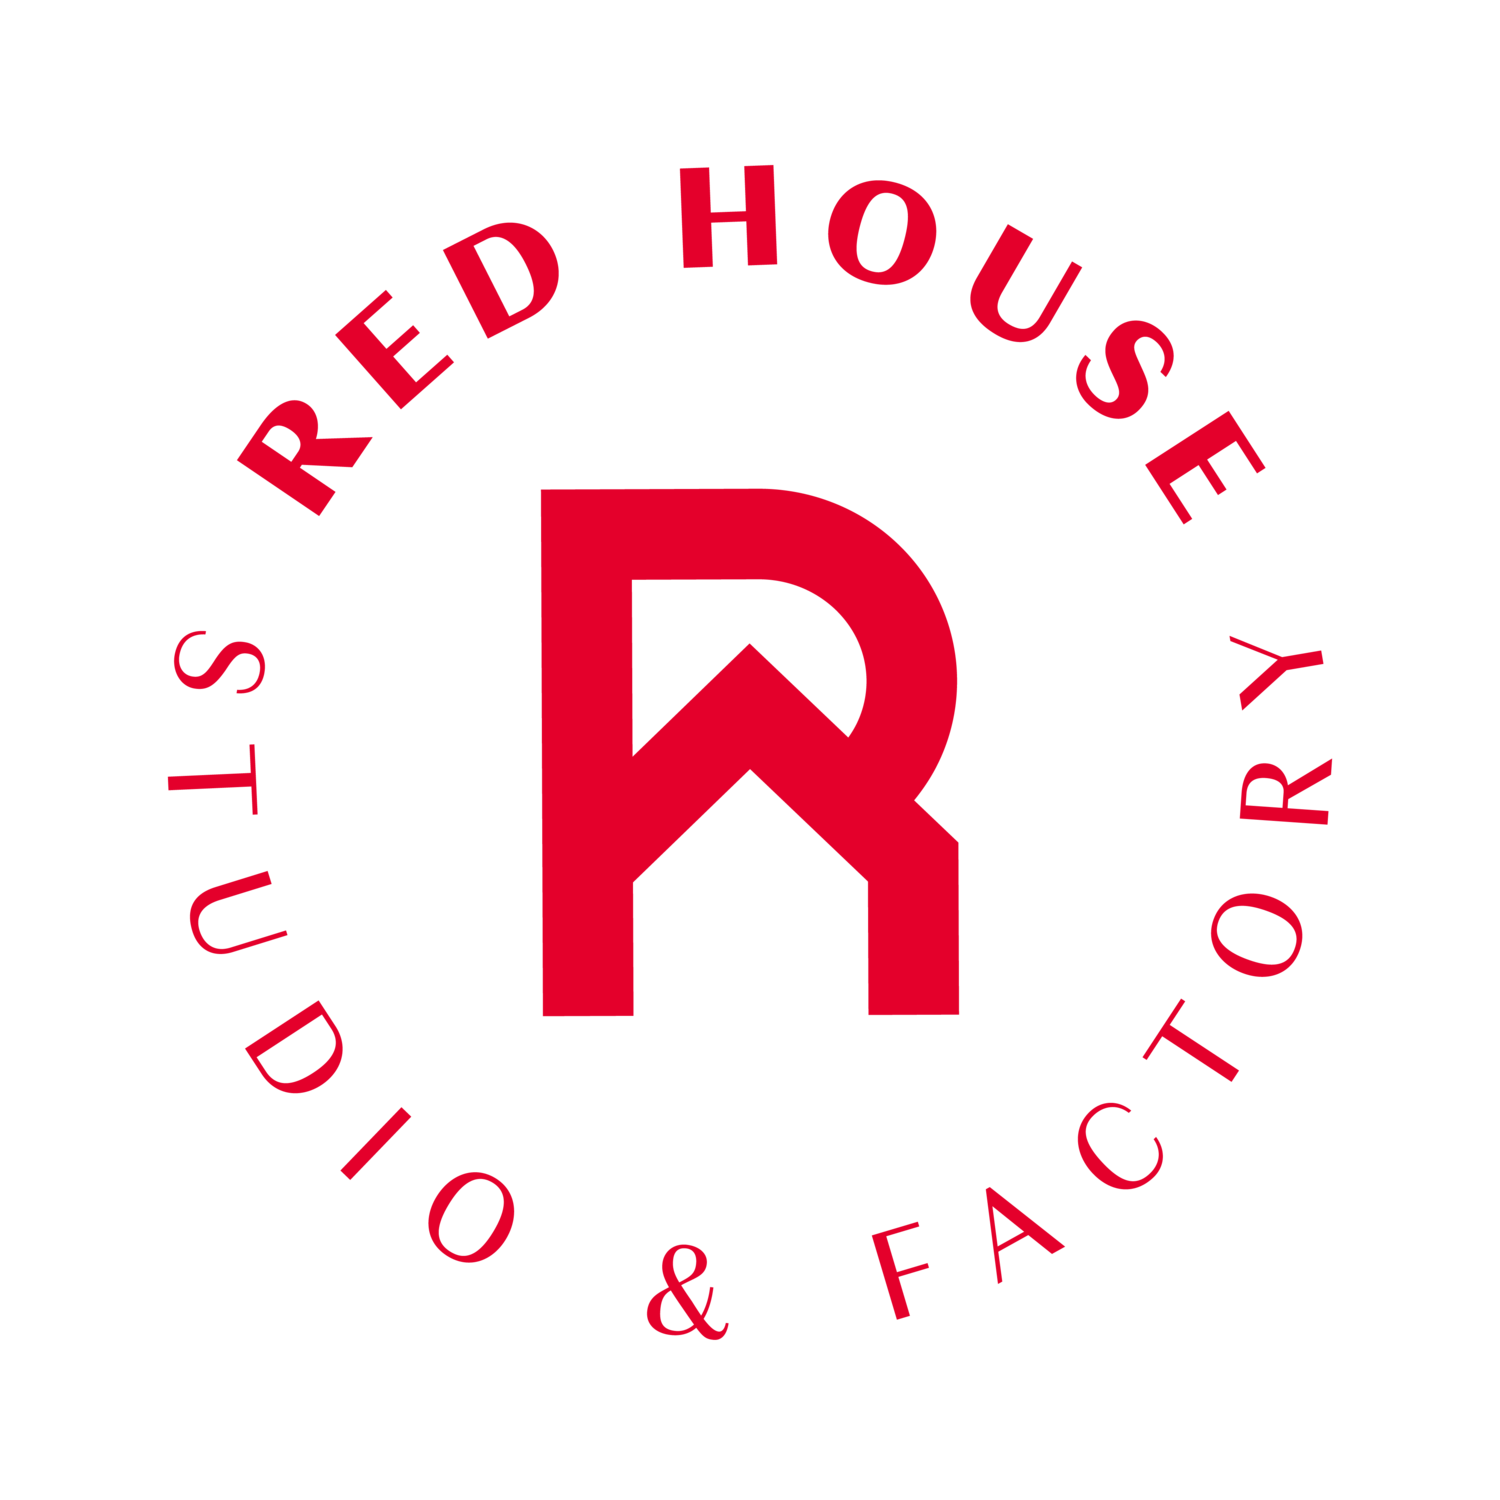 RED HOUSE STUDIO